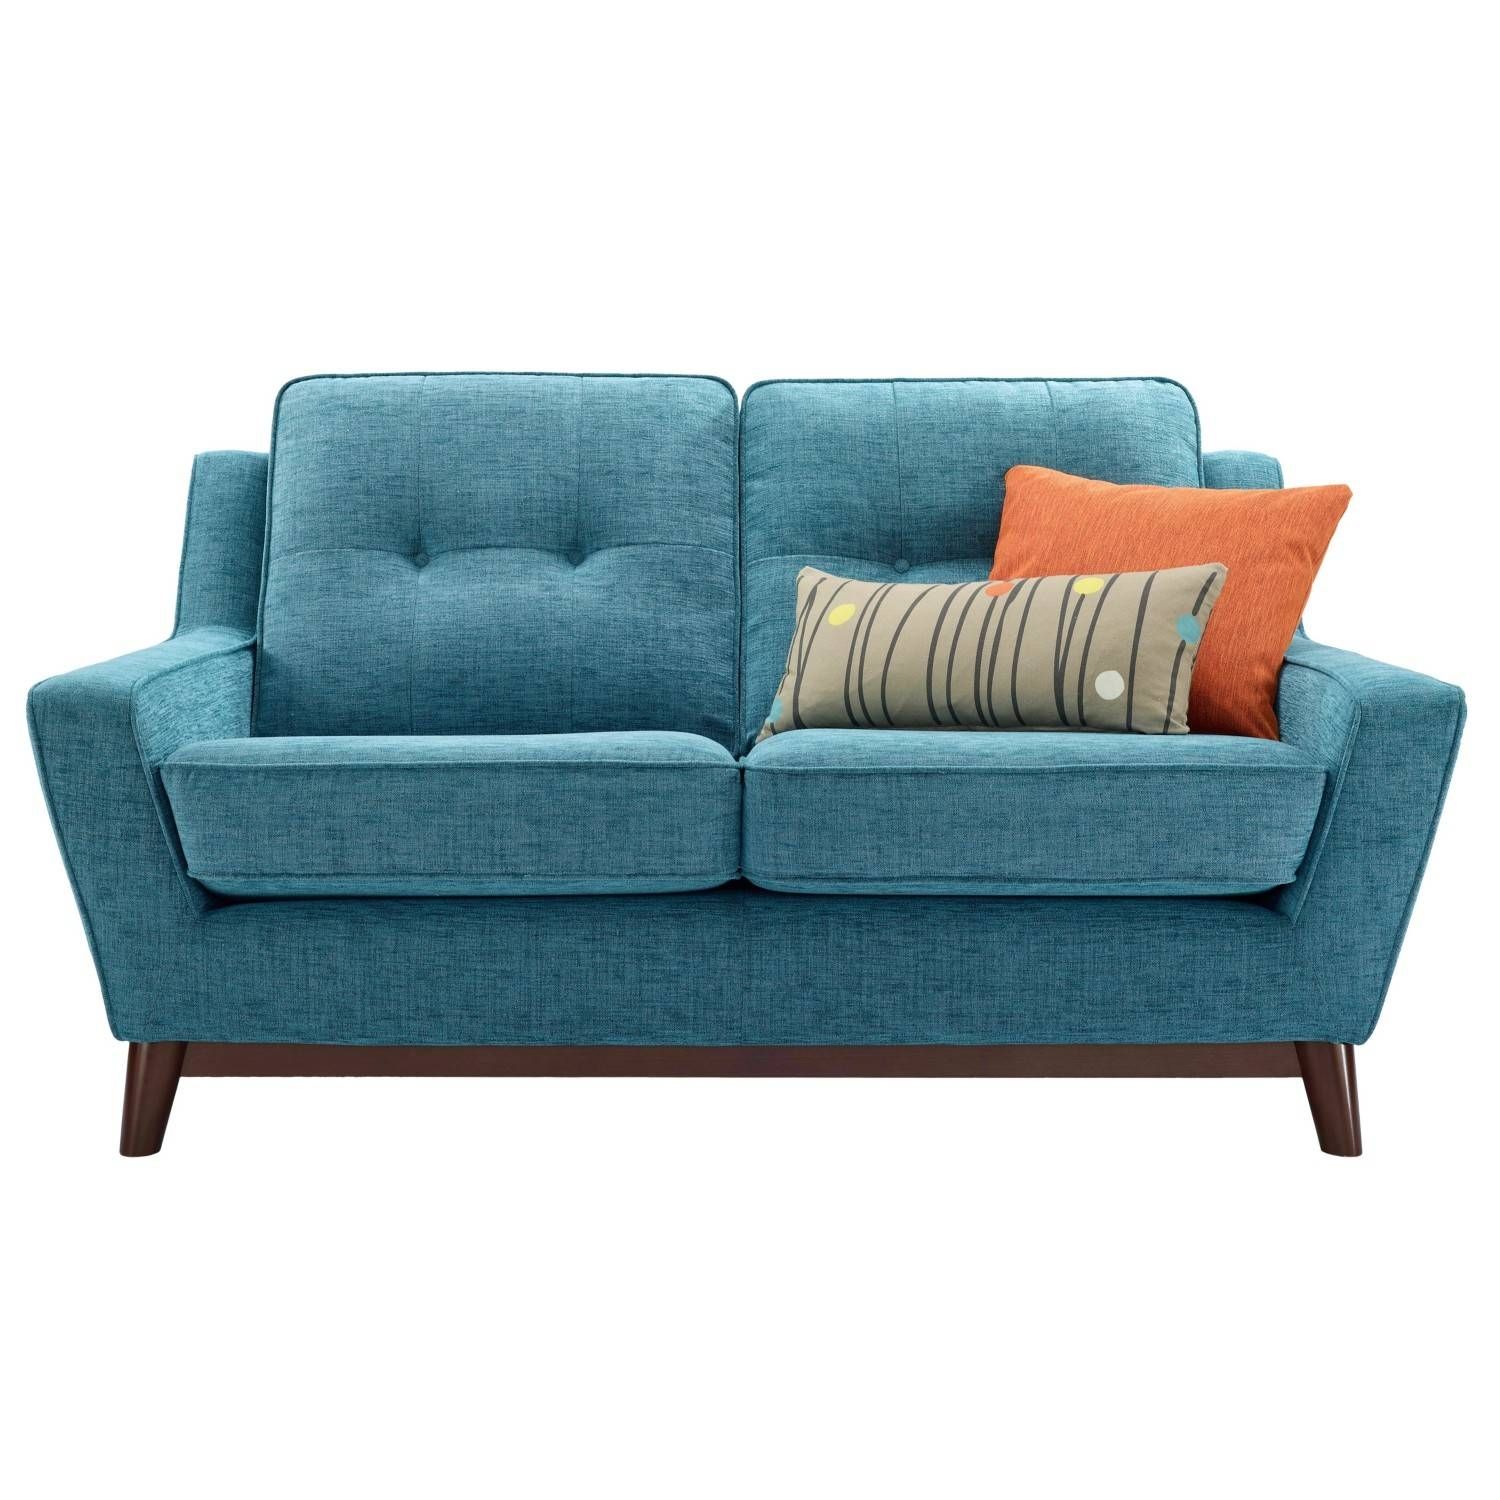 Images Of Small Sofa Home Design Ideas Cheap With Amazing ~ Idolza Within Small Sofas And Chairs (View 4 of 15)